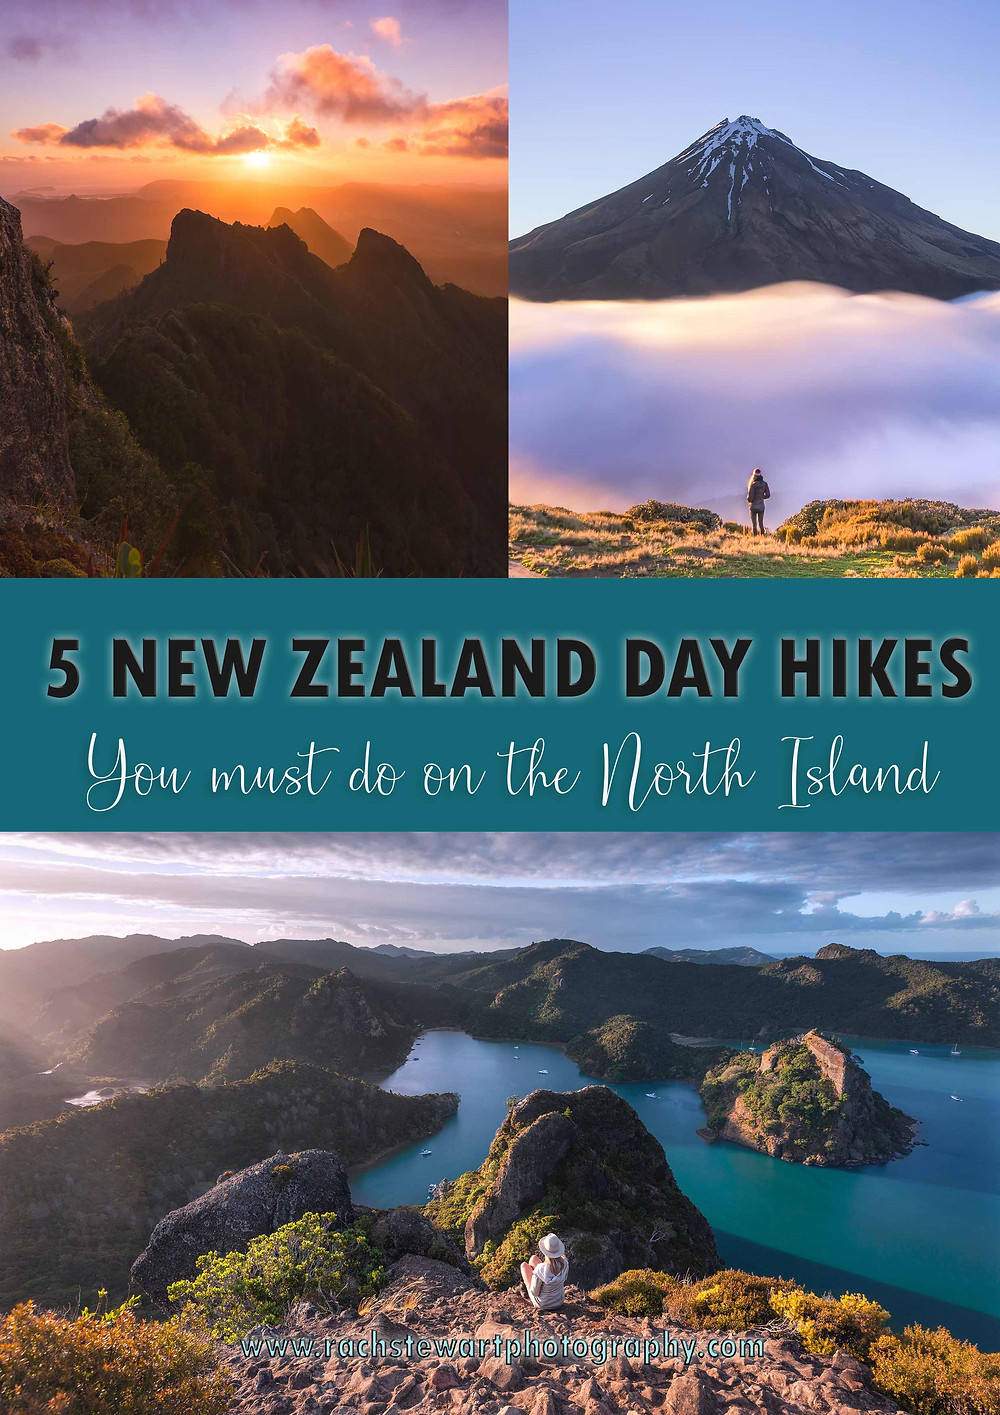 5 Must Do New Zealand Day Hikes North Island